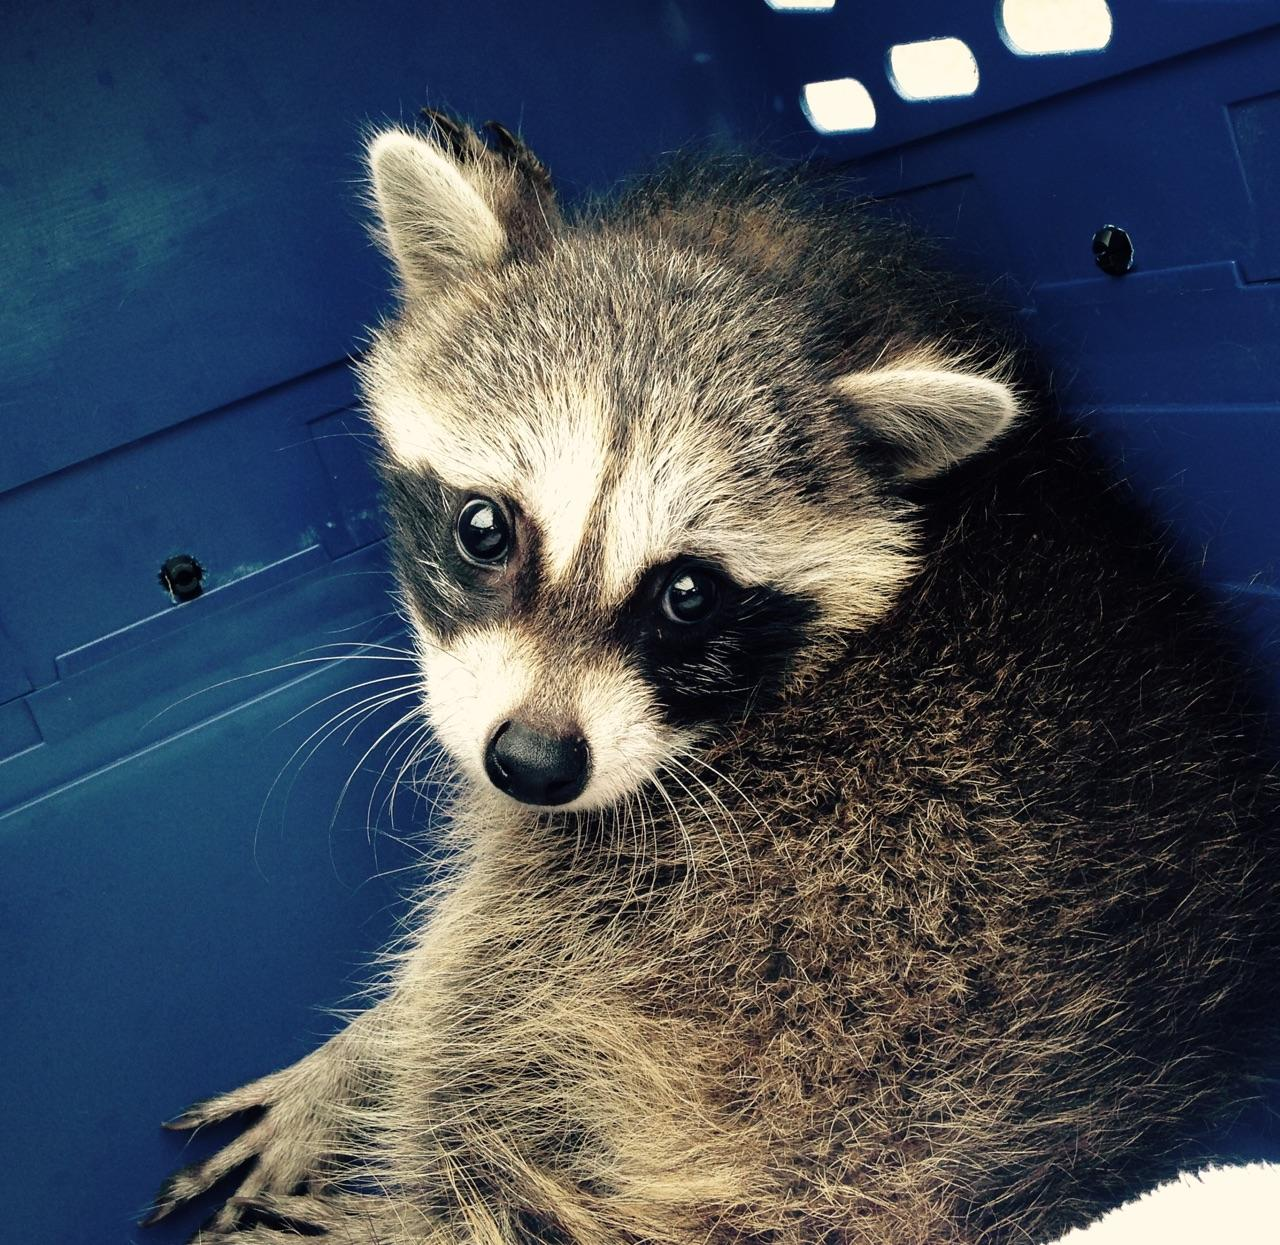 nebraska wildlife rehab inc wildlife help found a wild